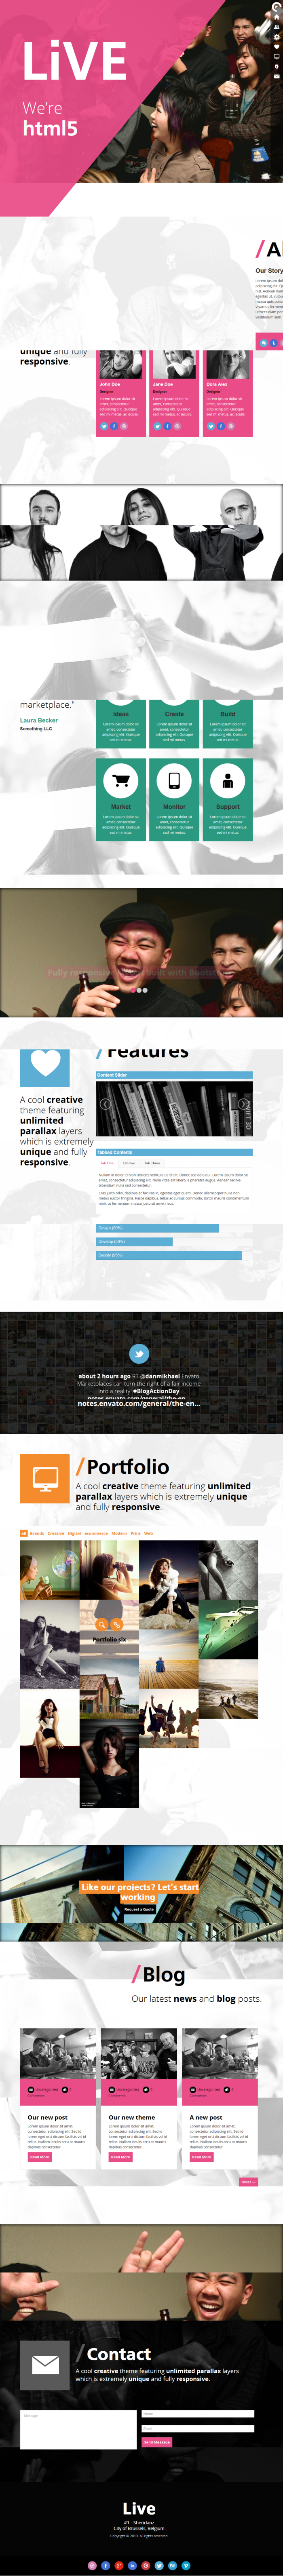 Live - one page wordpress theme